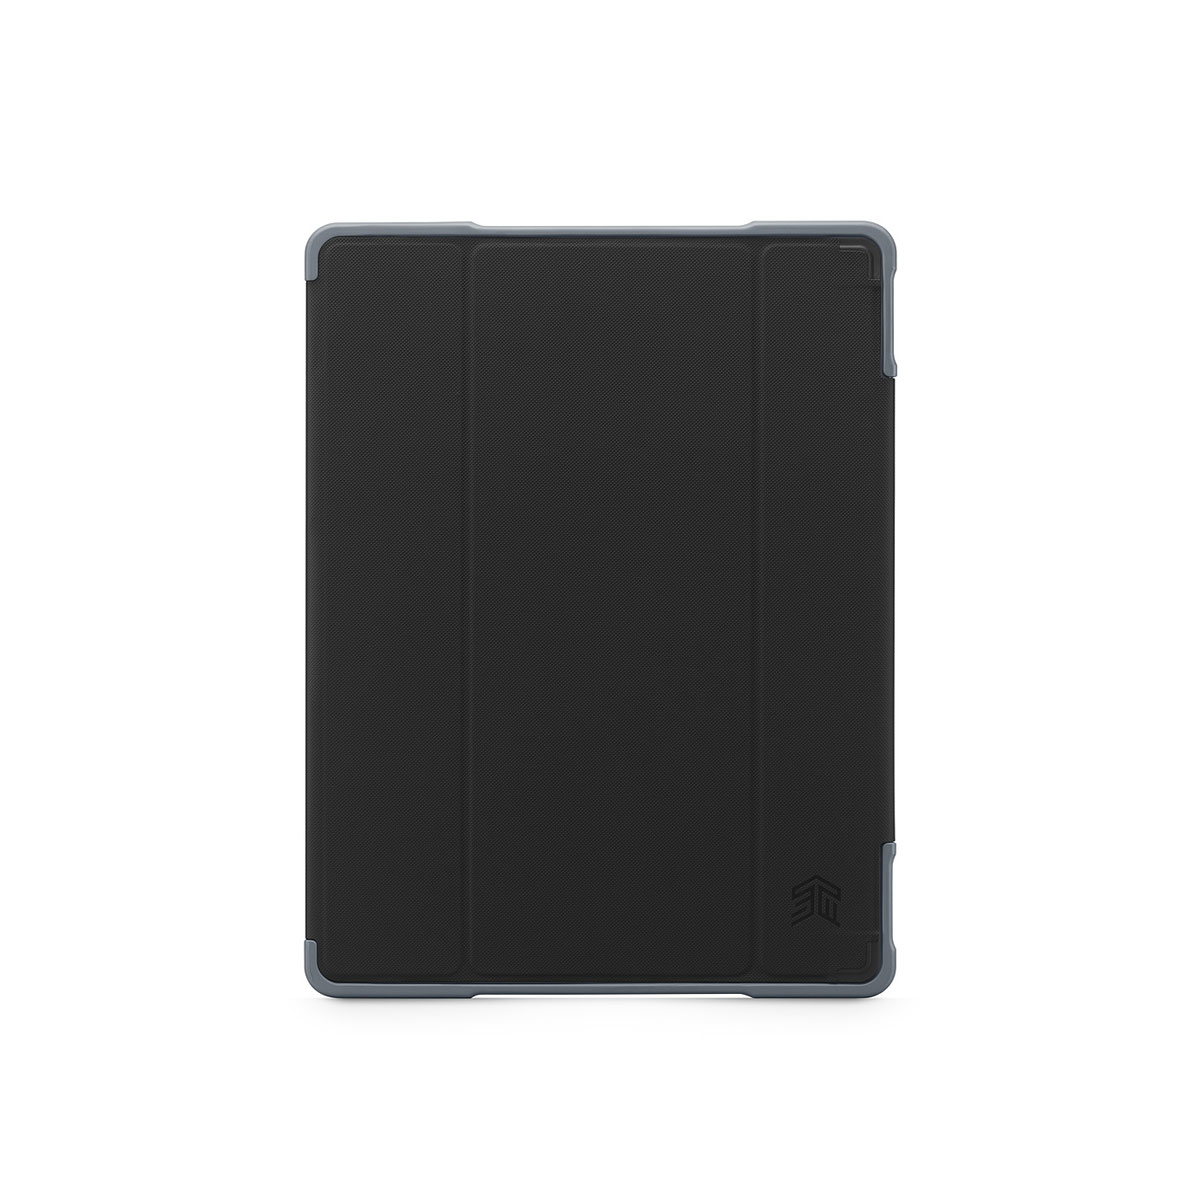 Stm Dux Plus Case iPad Pro 12.9 - 2016/ 2017 AP - Black